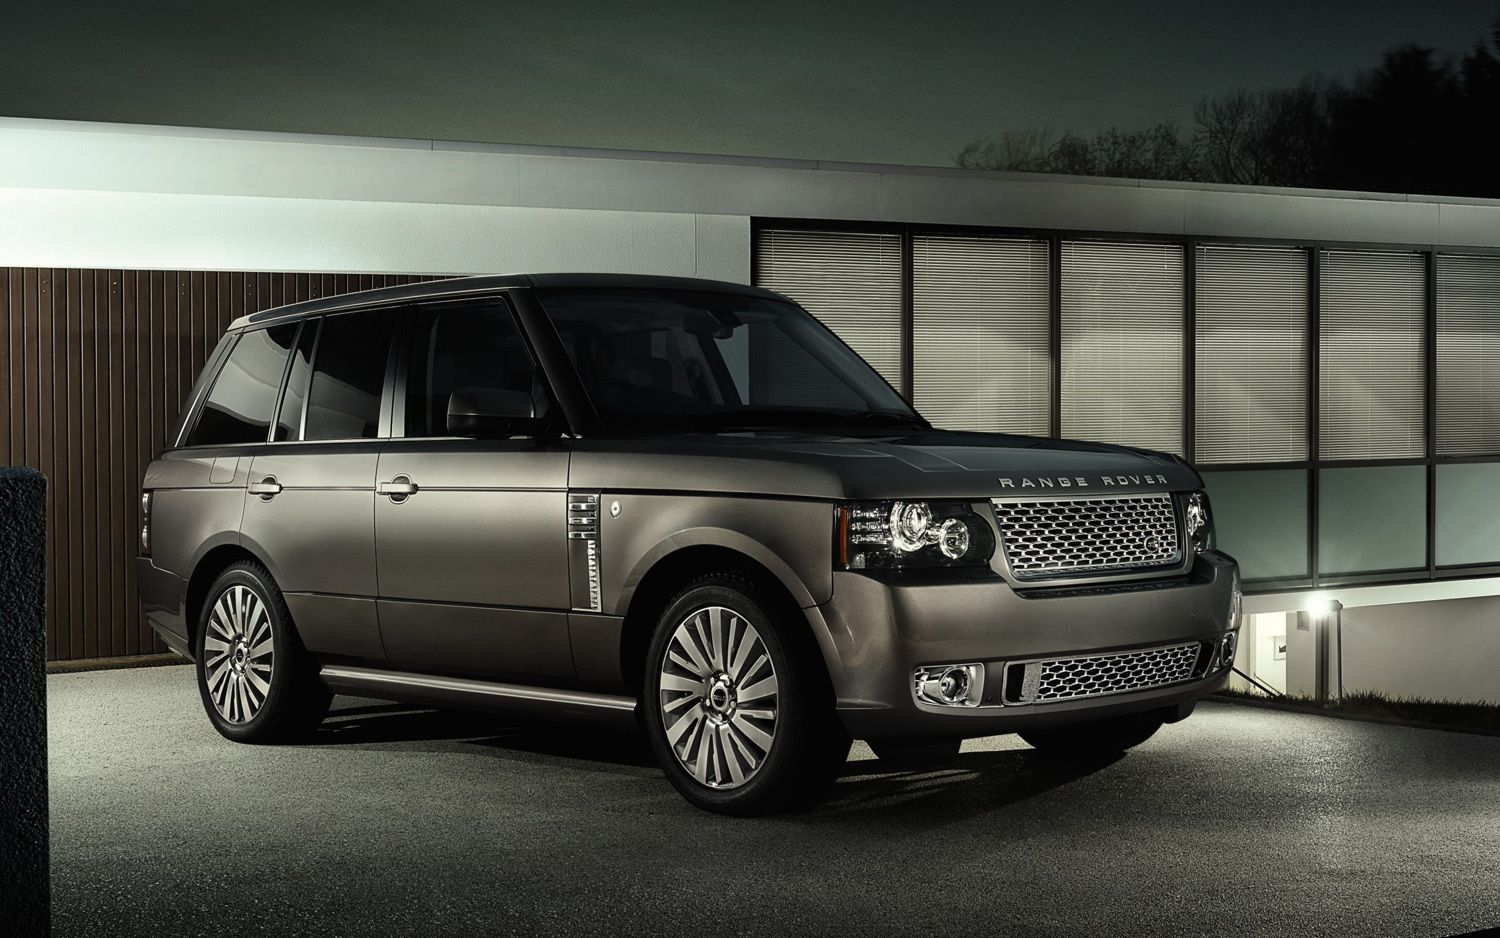 2012 Land Rover Range Rover Autobiography Ultimate Front Three Quarters View1